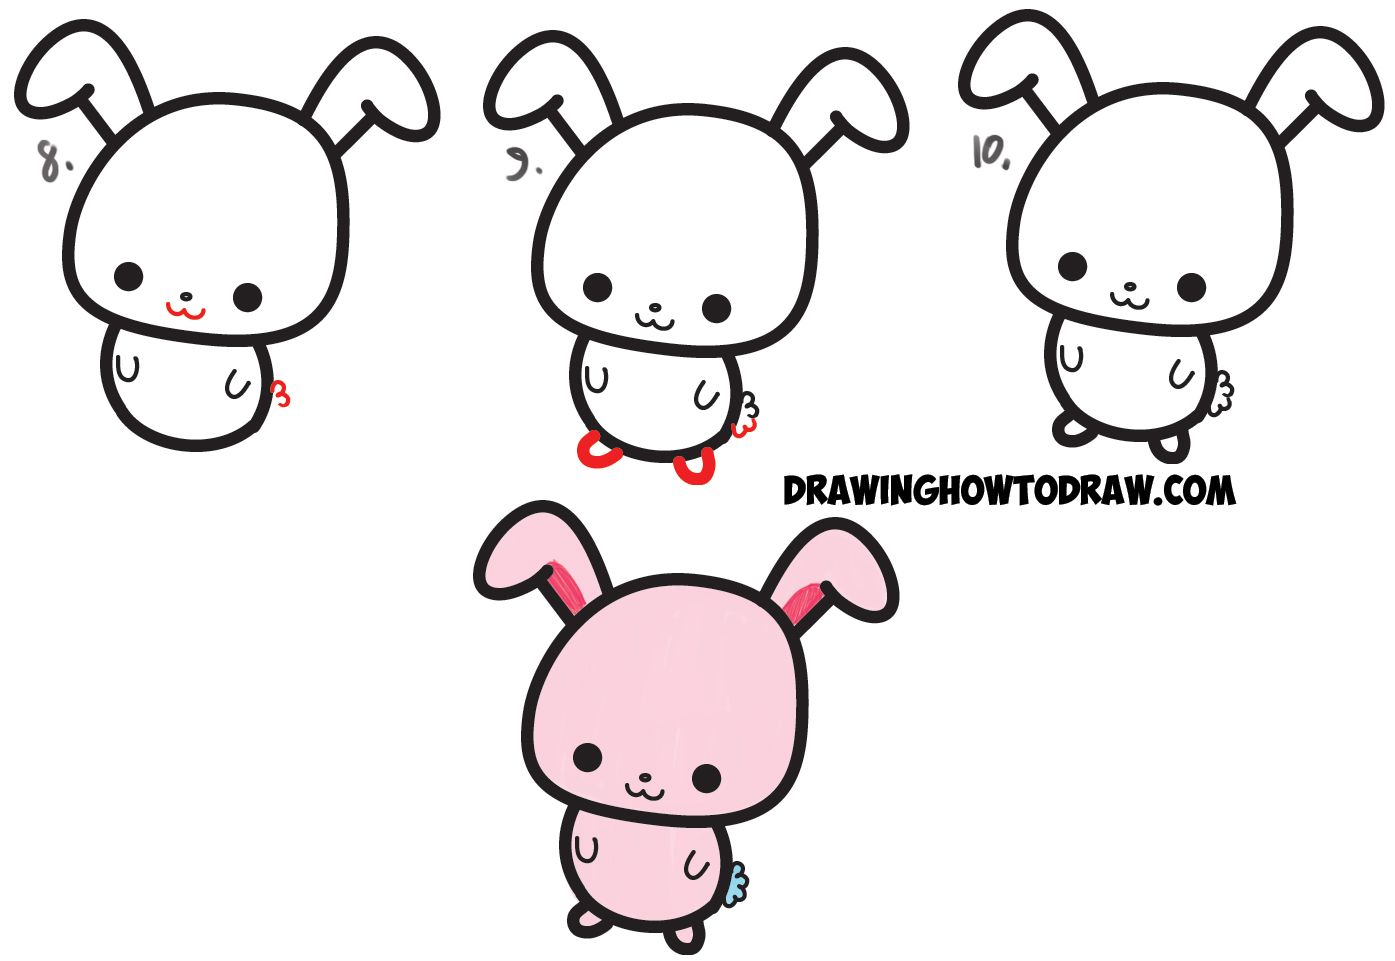 Drawn bunny step by step Easy a Draw Step Cartoon